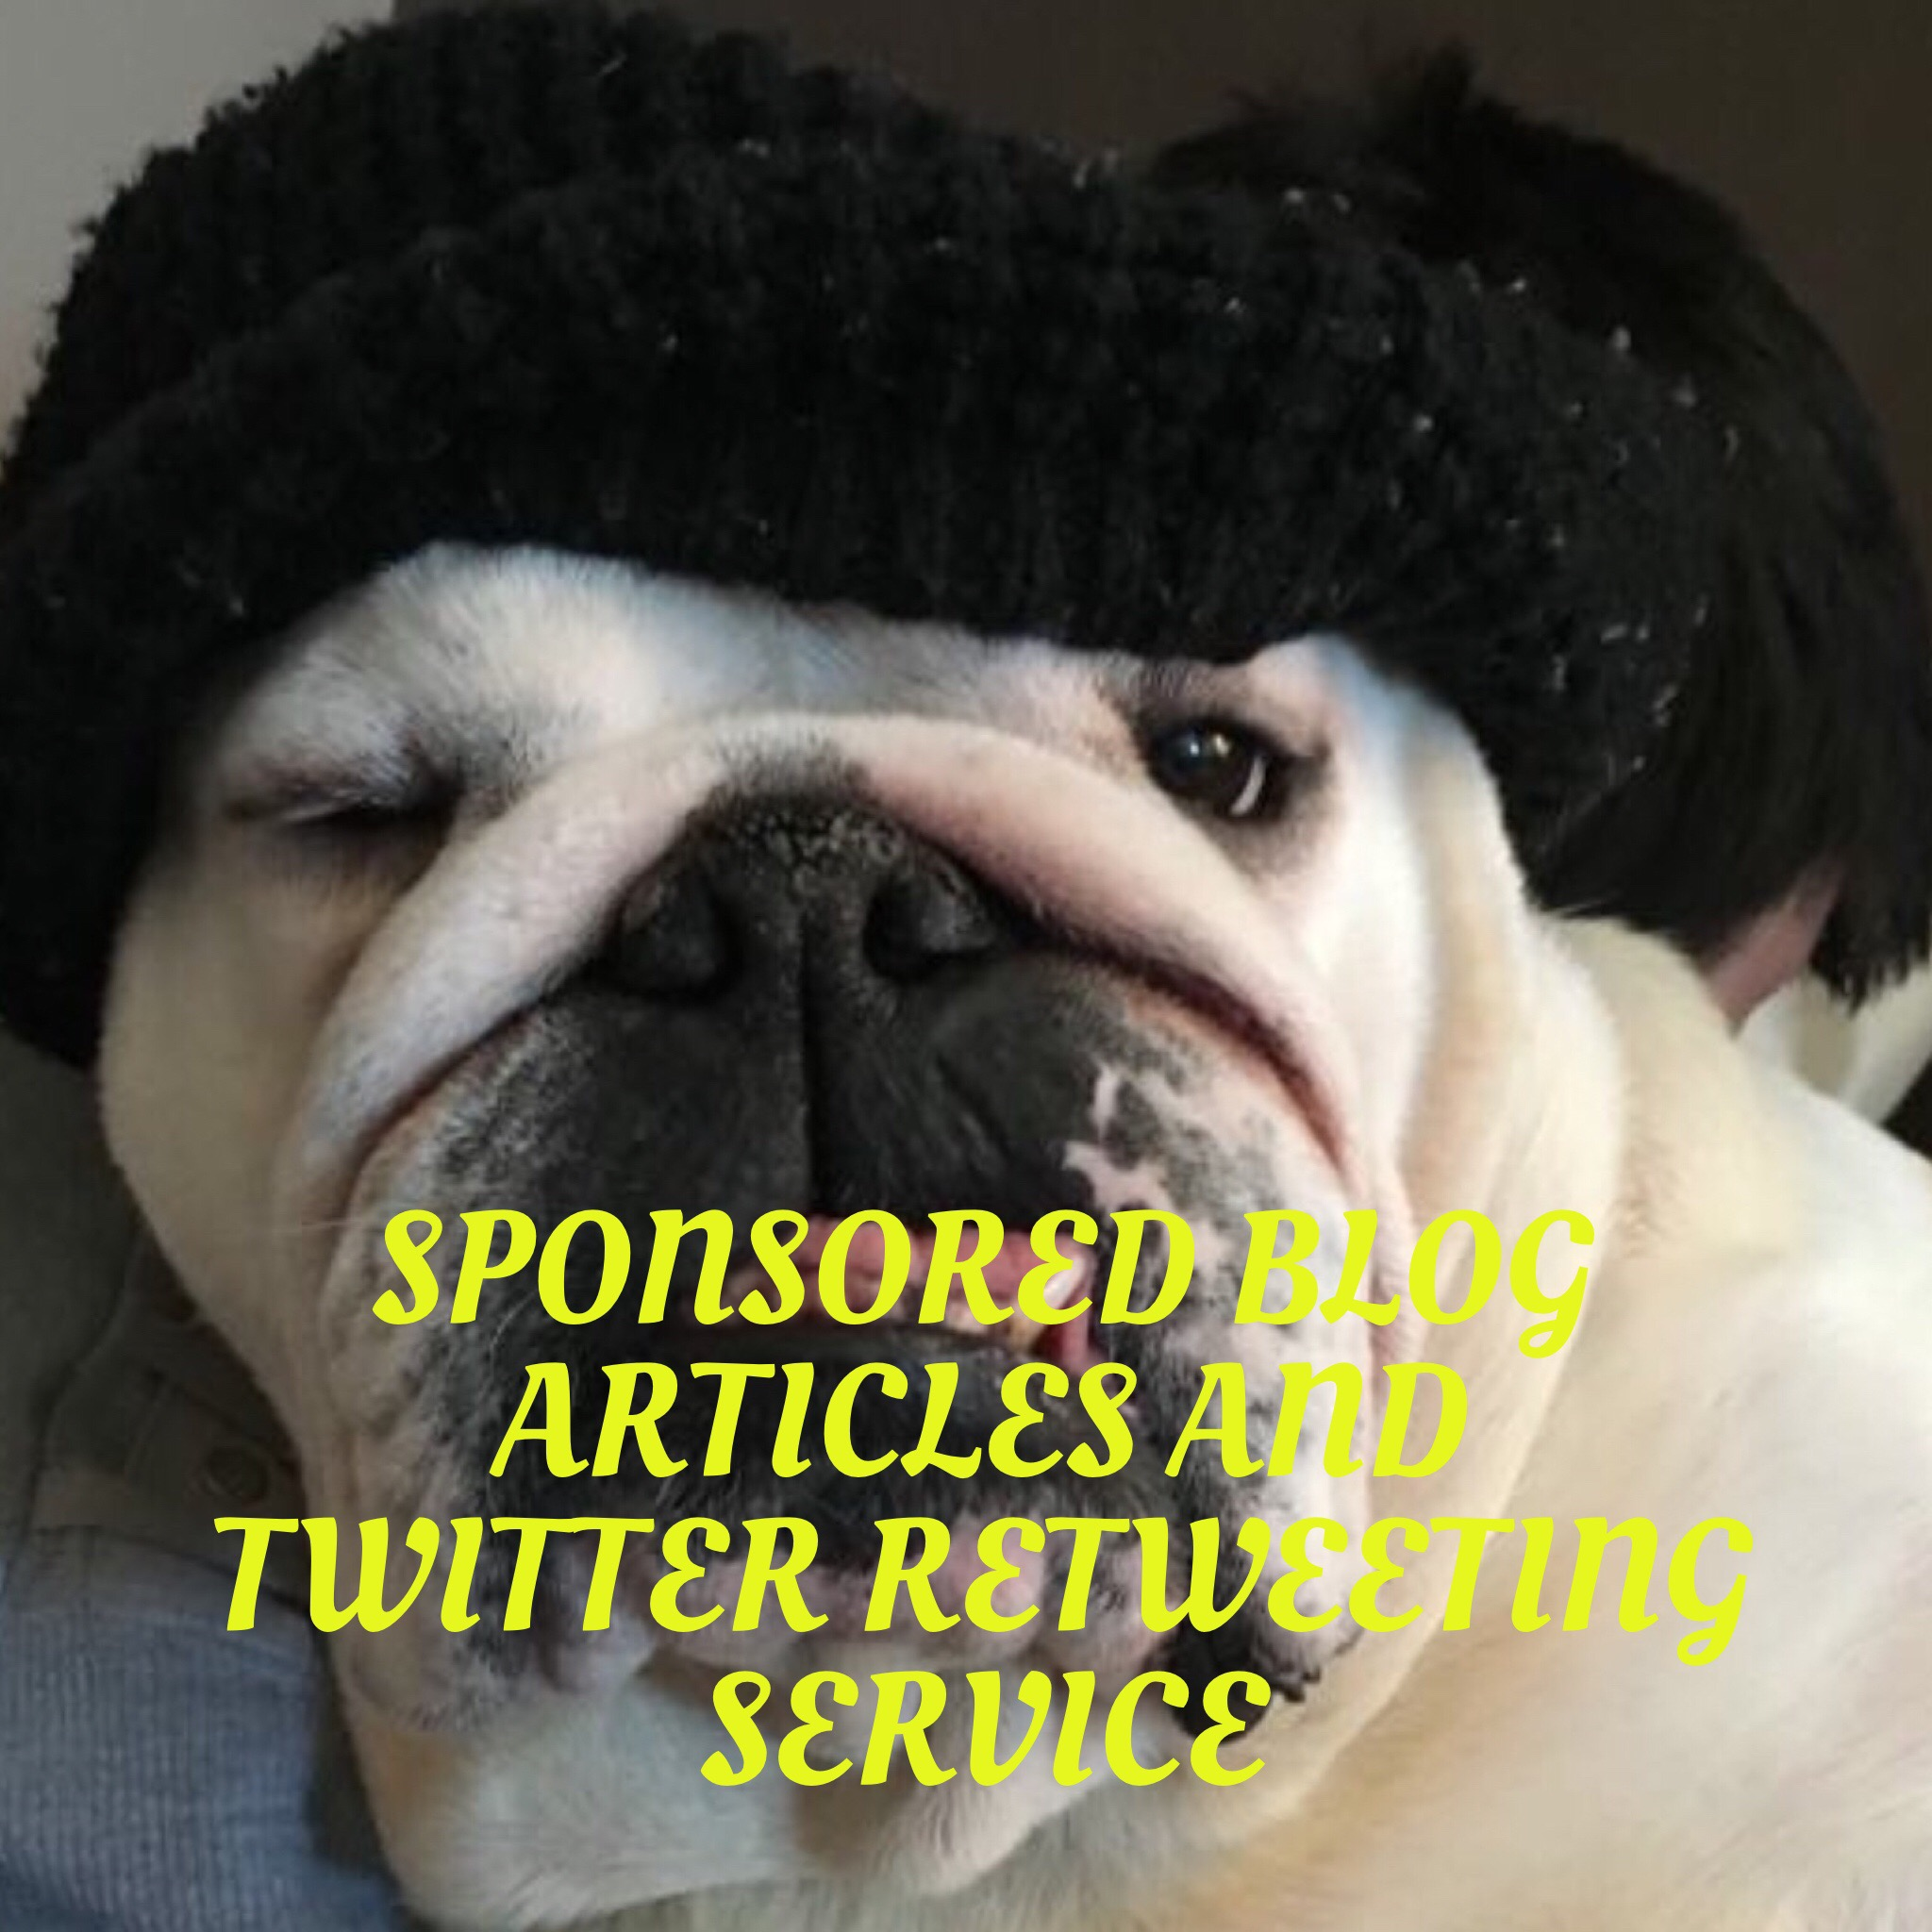 Sponsored blogs